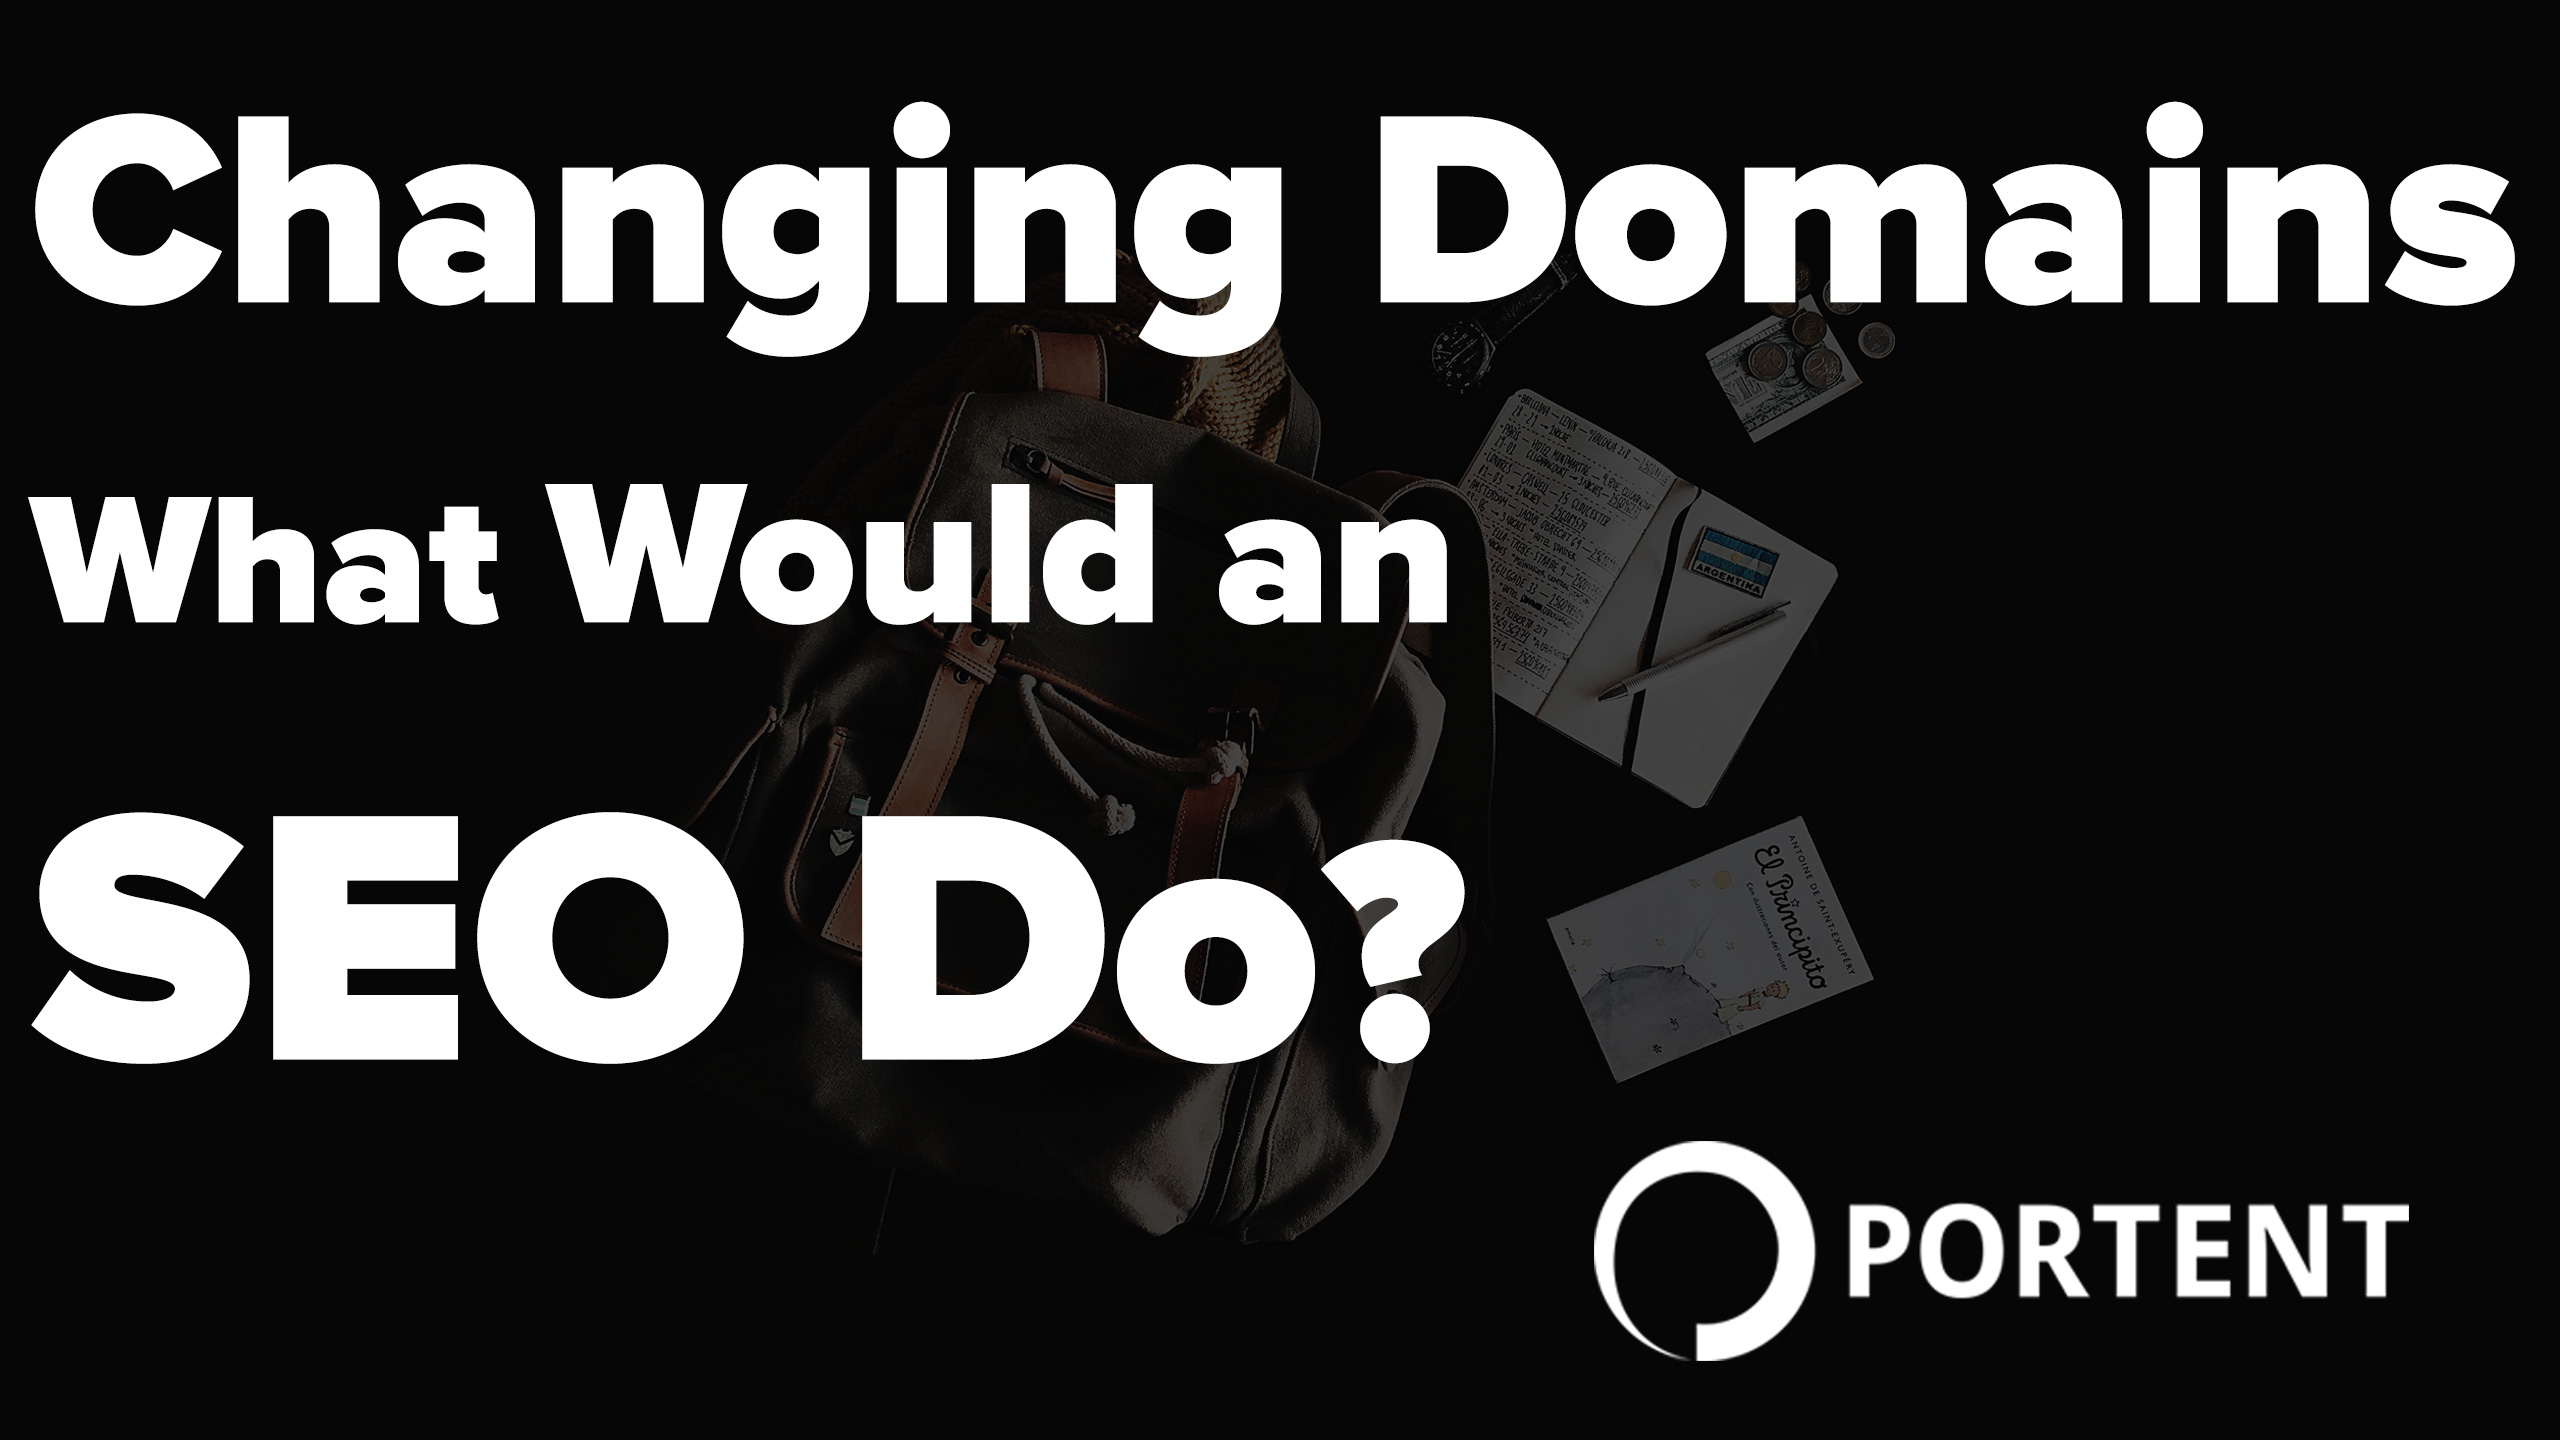 Changing domains for your business? Read this guide before you do.